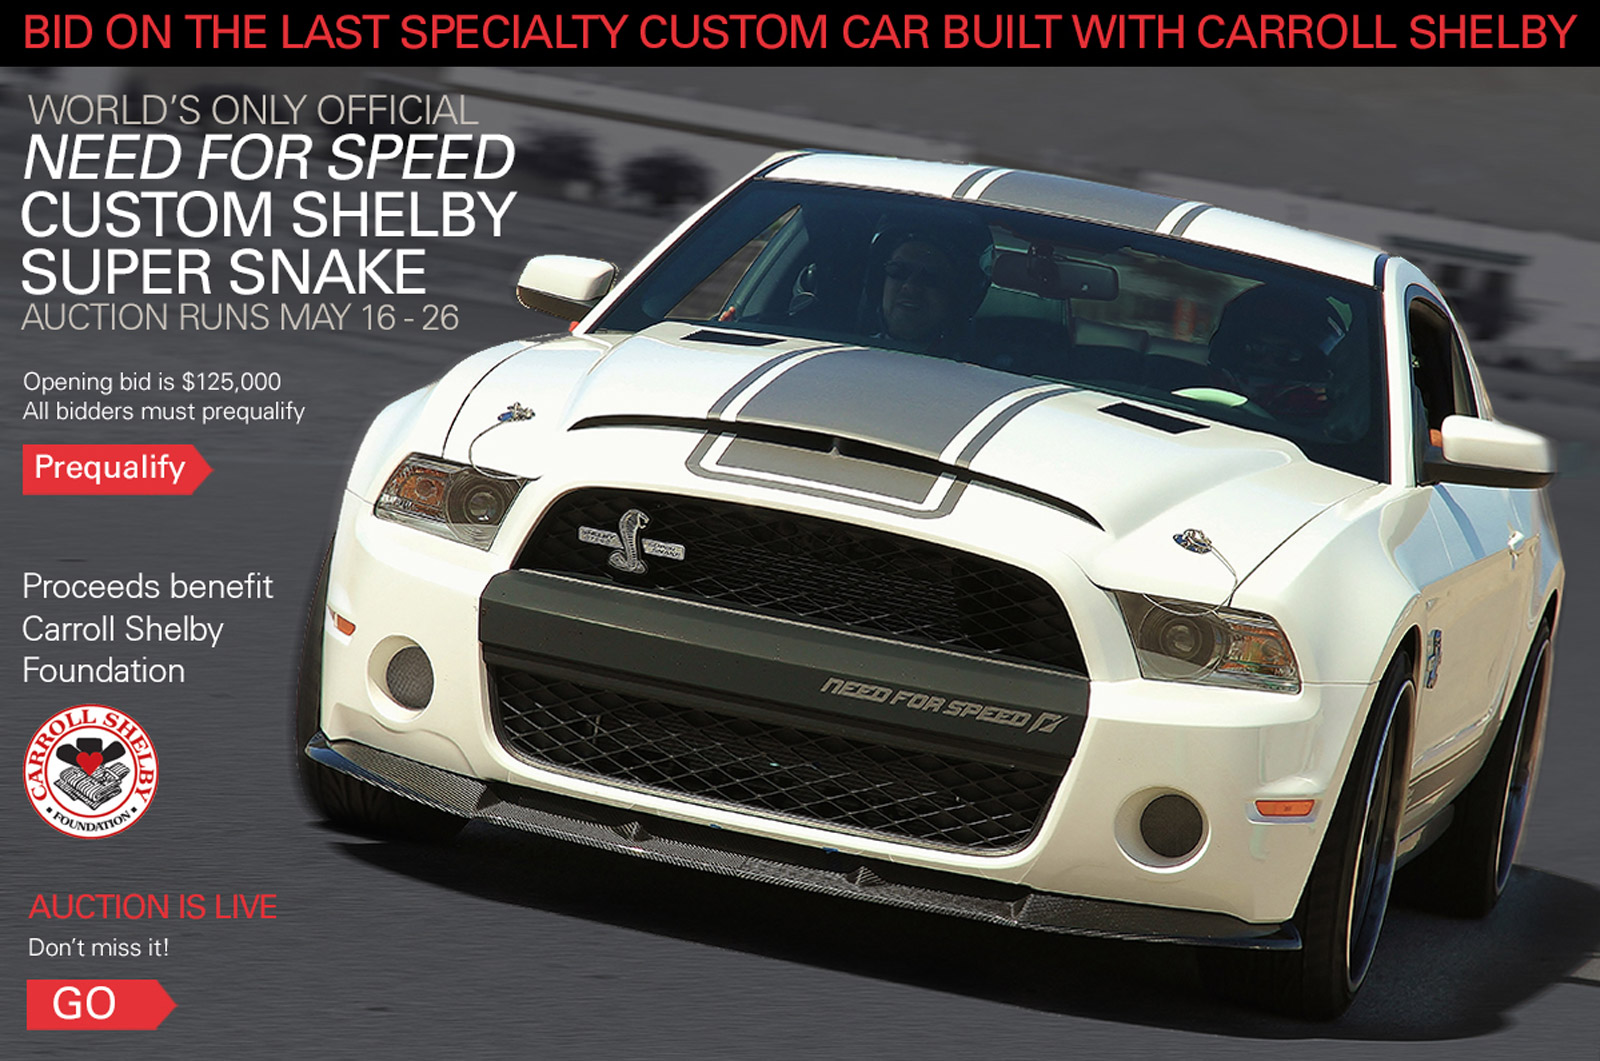 last car built with carroll shelby finally going up for auction - 2011 Ford Mustang Shelby Gt500 With Shelby Super Snake Package